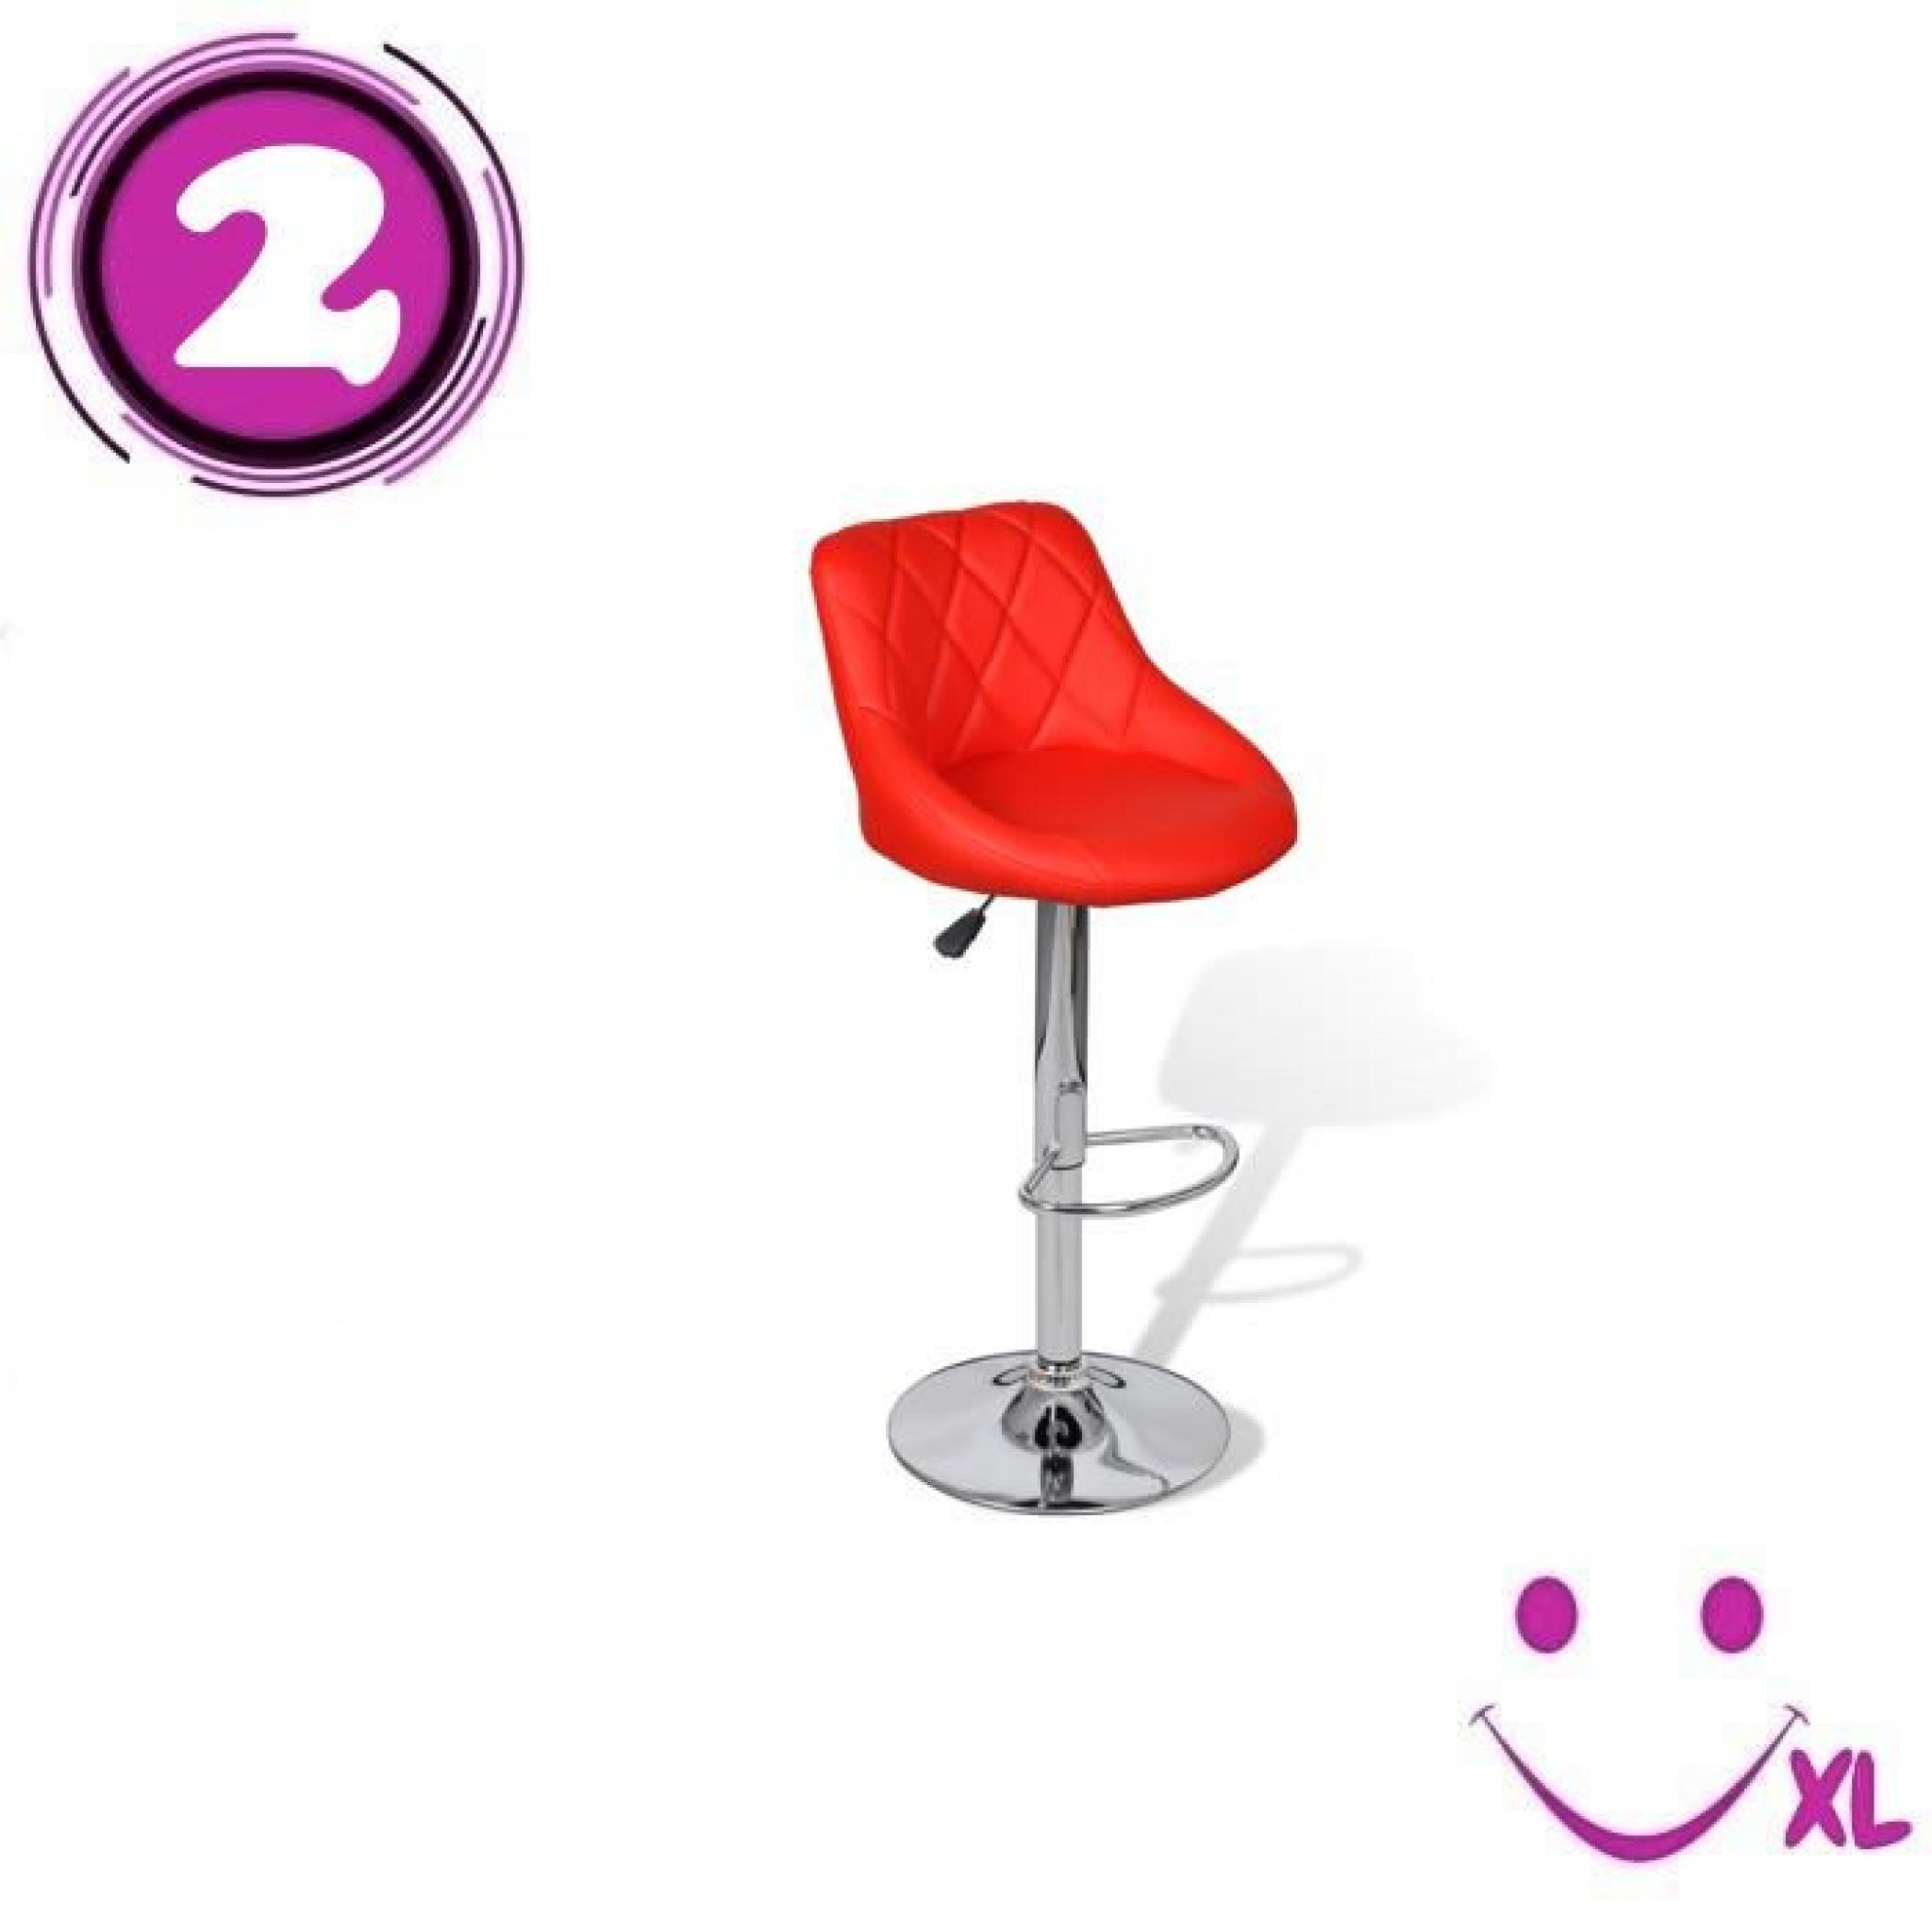 2 Tabourets Rouge Lot De 2 Tabourets De Bar Rouges Design Moderne Achat